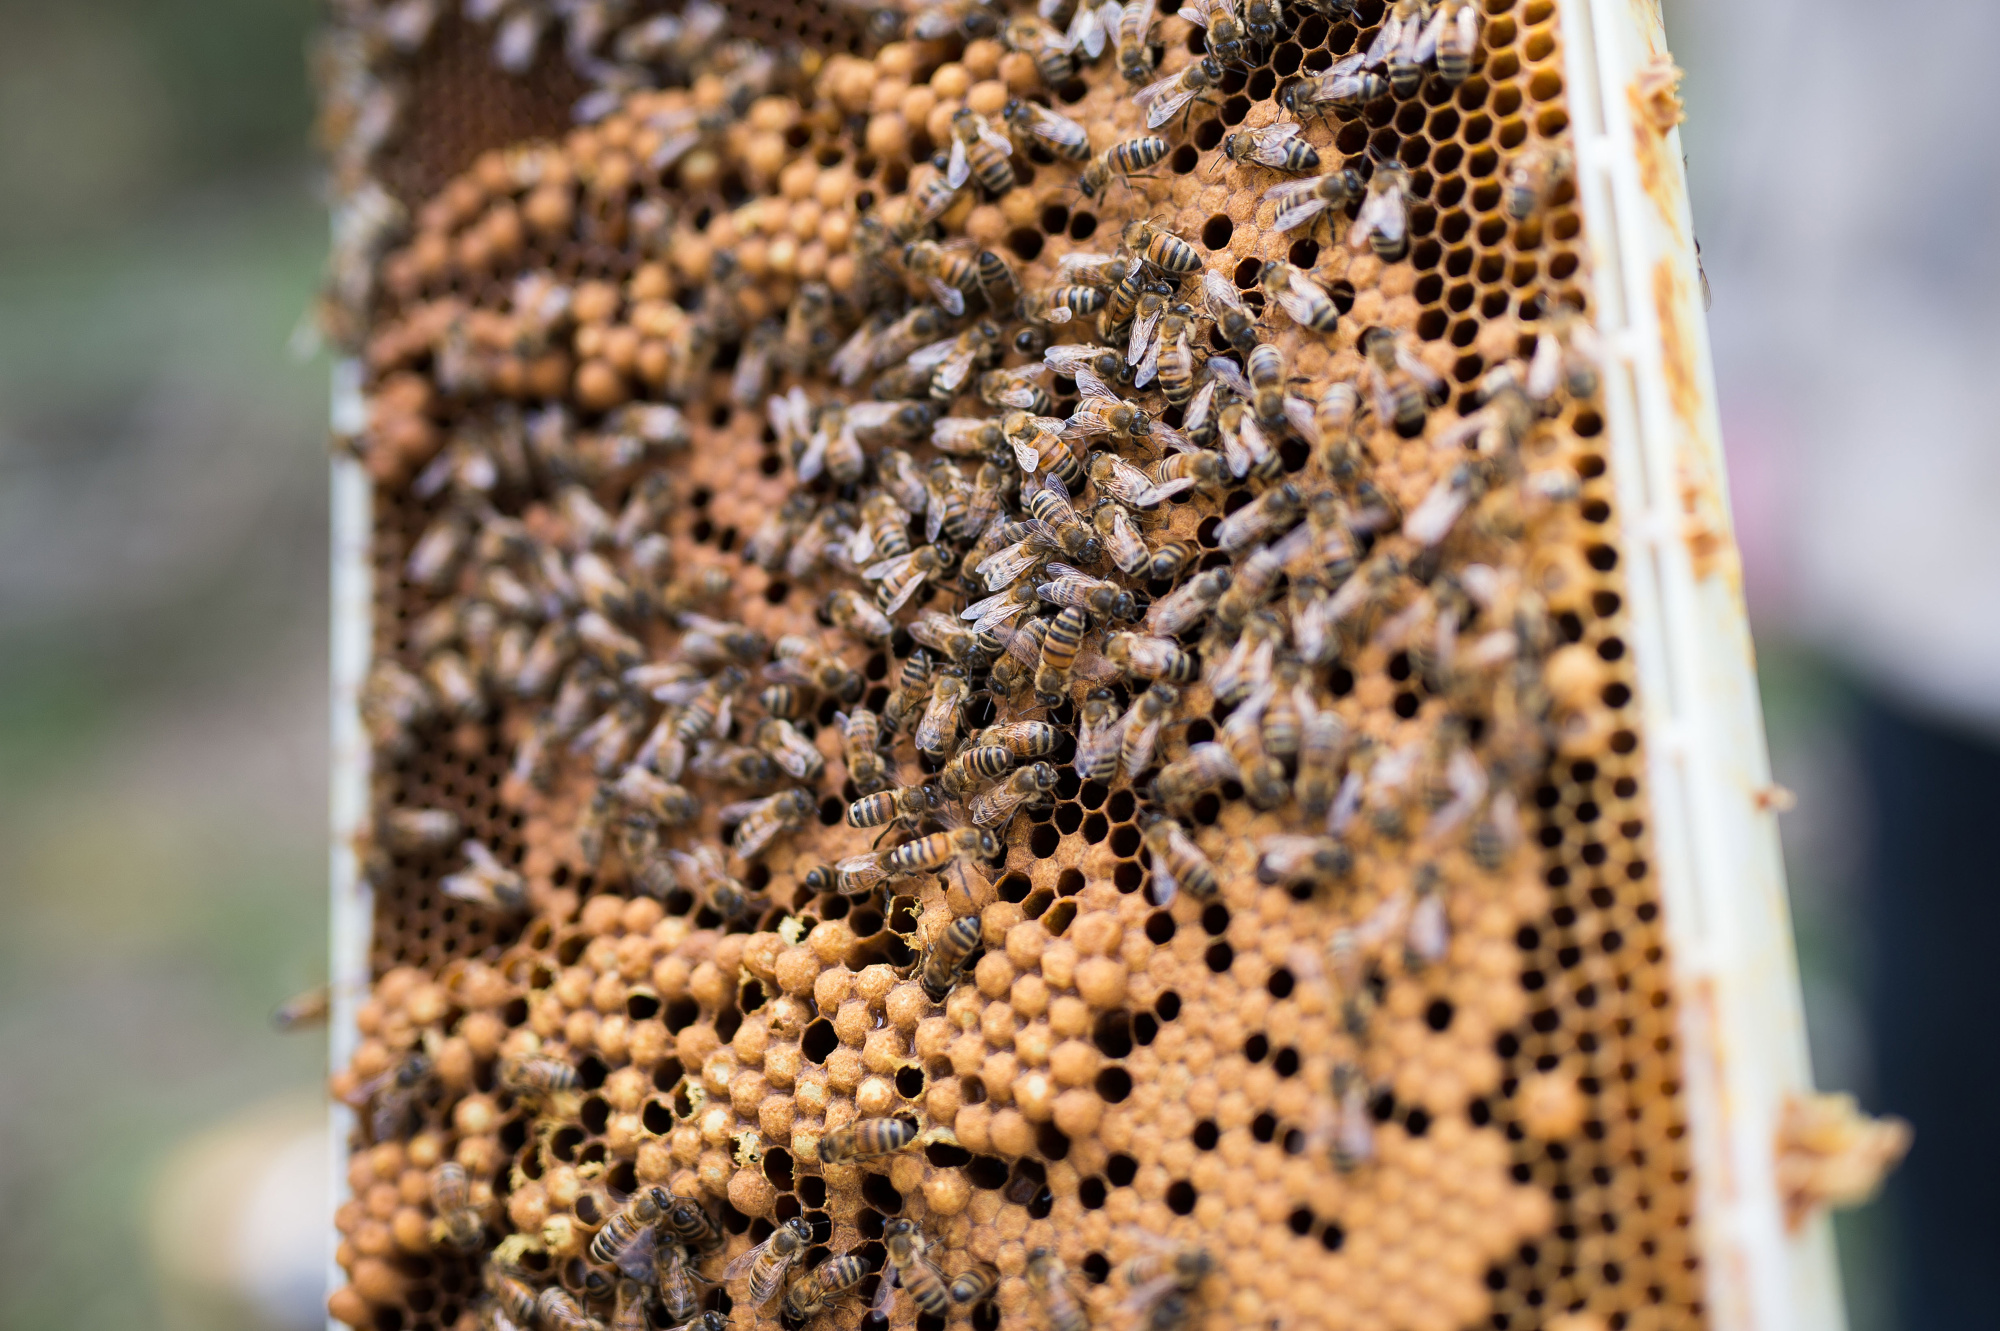 Colony collapse disorder CCD is the phenomenon that occurs when the majority of worker bees in a colony disappear and leave behind a queen plenty of food and a few